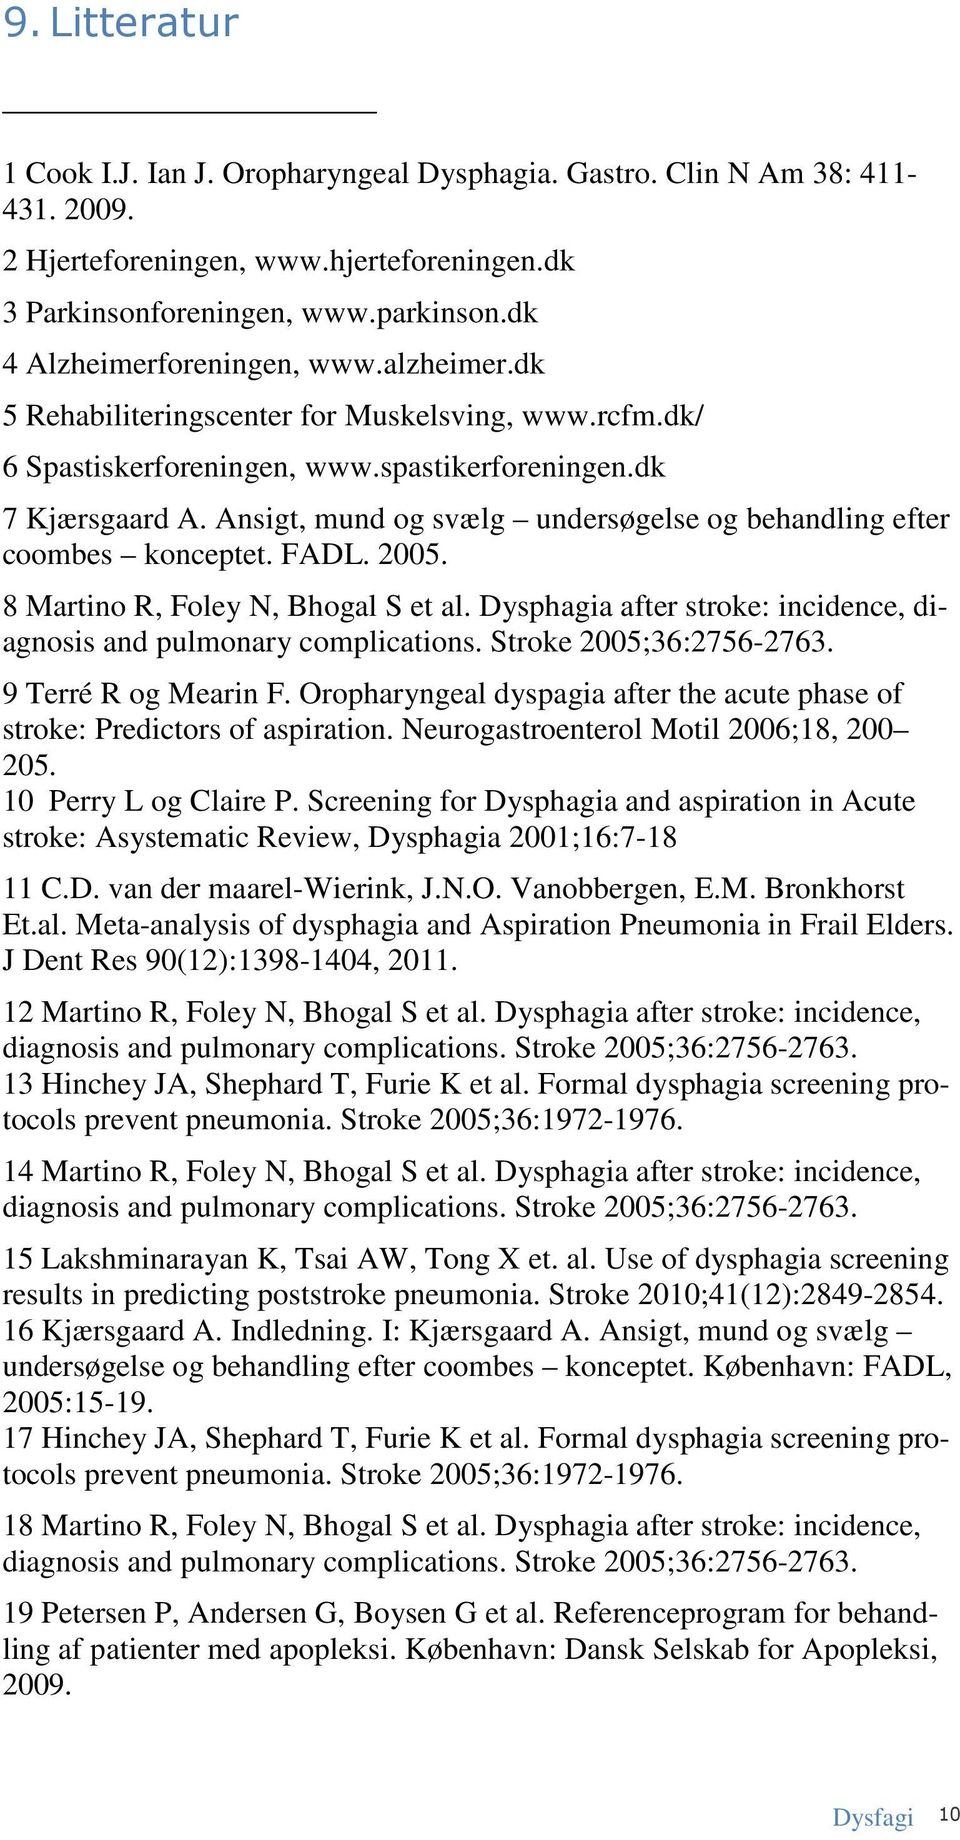 Ansigt, mund og svælg undersøgelse og behandling efter coombes konceptet. FADL. 2005. 8 Martino R, Foley N, Bhogal S et al. Dysphagia after stroke: incidence, diagnosis and pulmonary complications.